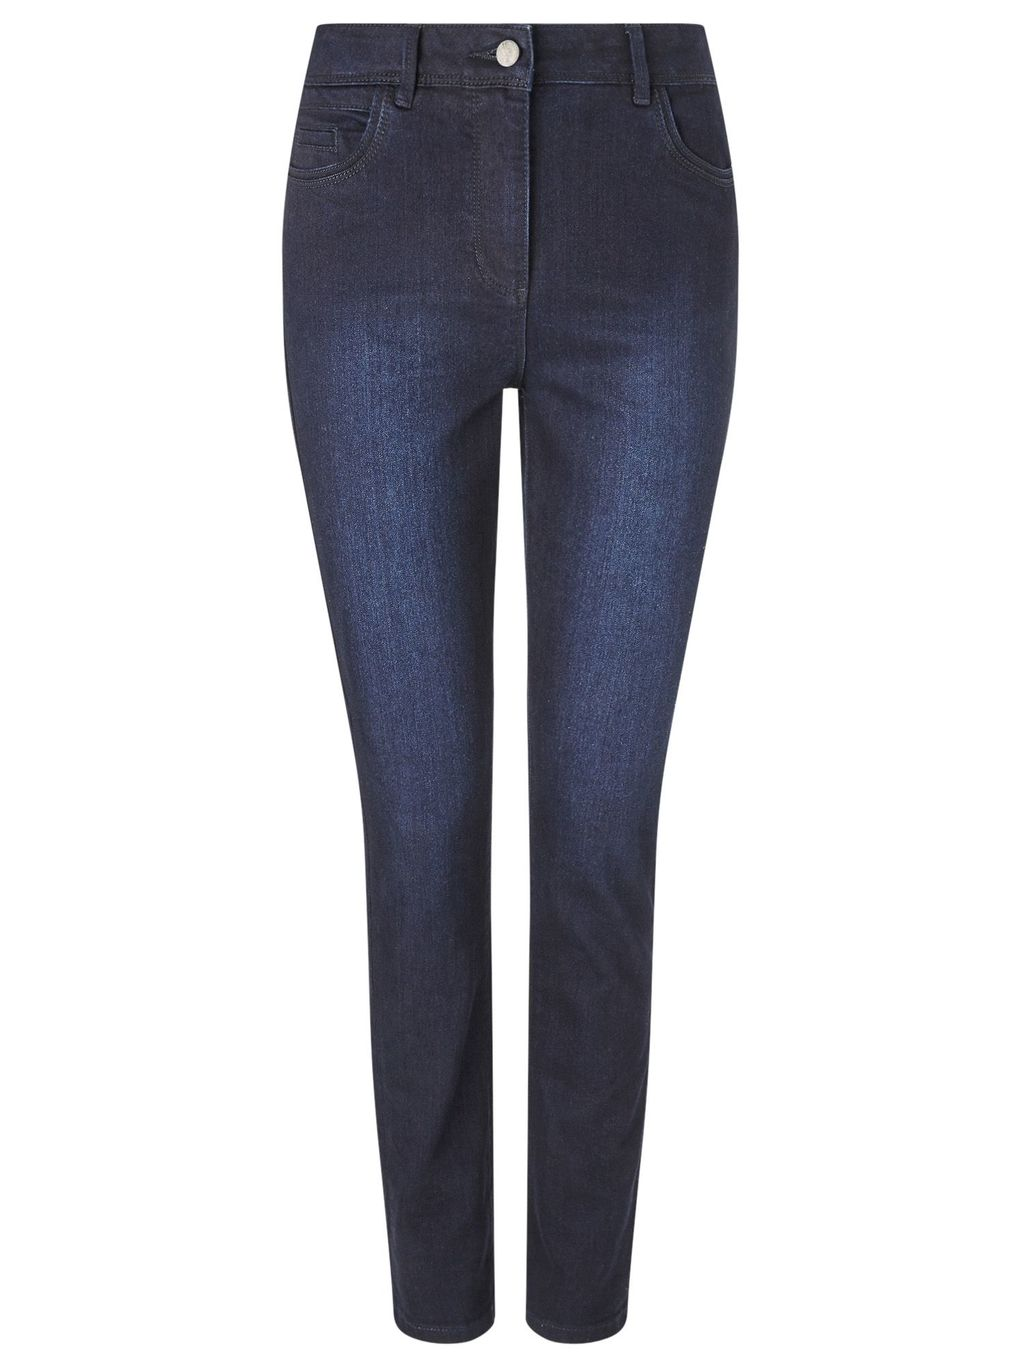 Dark Straight Leg Jean Long, Denim - style: straight leg; length: standard; pattern: plain; pocket detail: traditional 5 pocket; waist: mid/regular rise; predominant colour: navy; occasions: casual; fibres: cotton - stretch; jeans detail: shading down centre of thigh; texture group: denim; pattern type: fabric; season: s/s 2016; wardrobe: basic